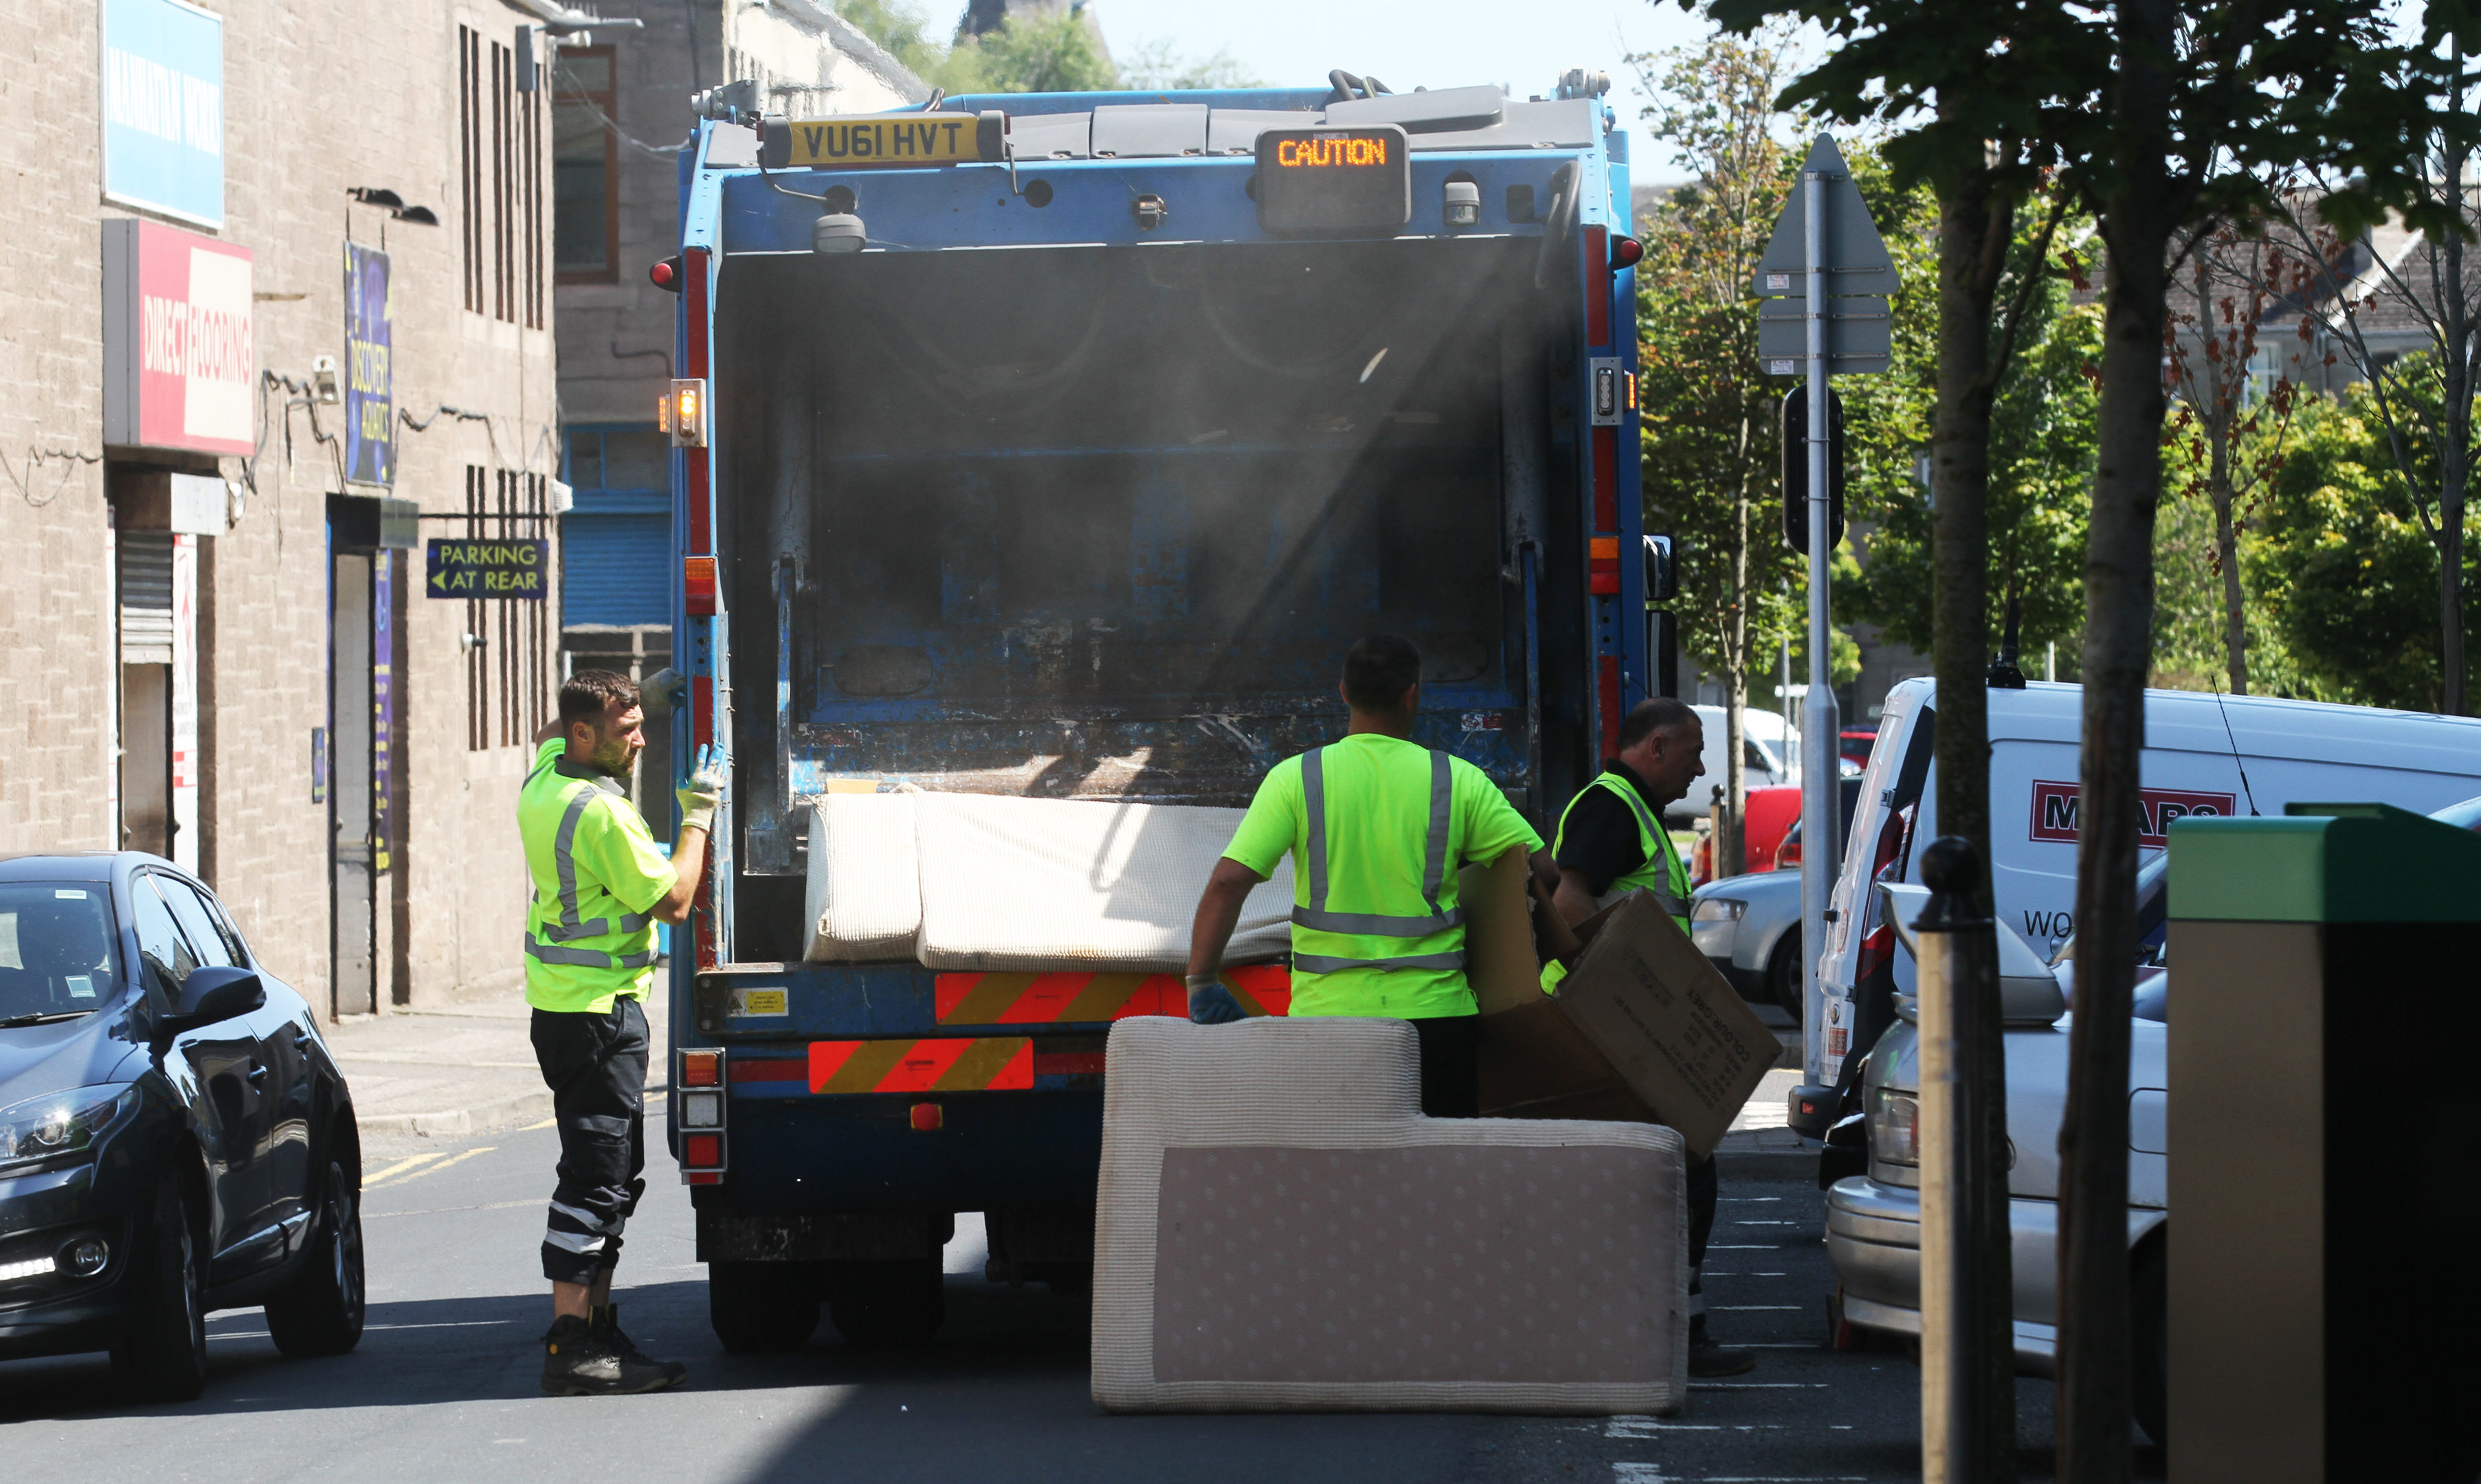 Residents' satisfaction over rubbish collection has slumped in the last few years, according to figures published in an Accounts Commission report.